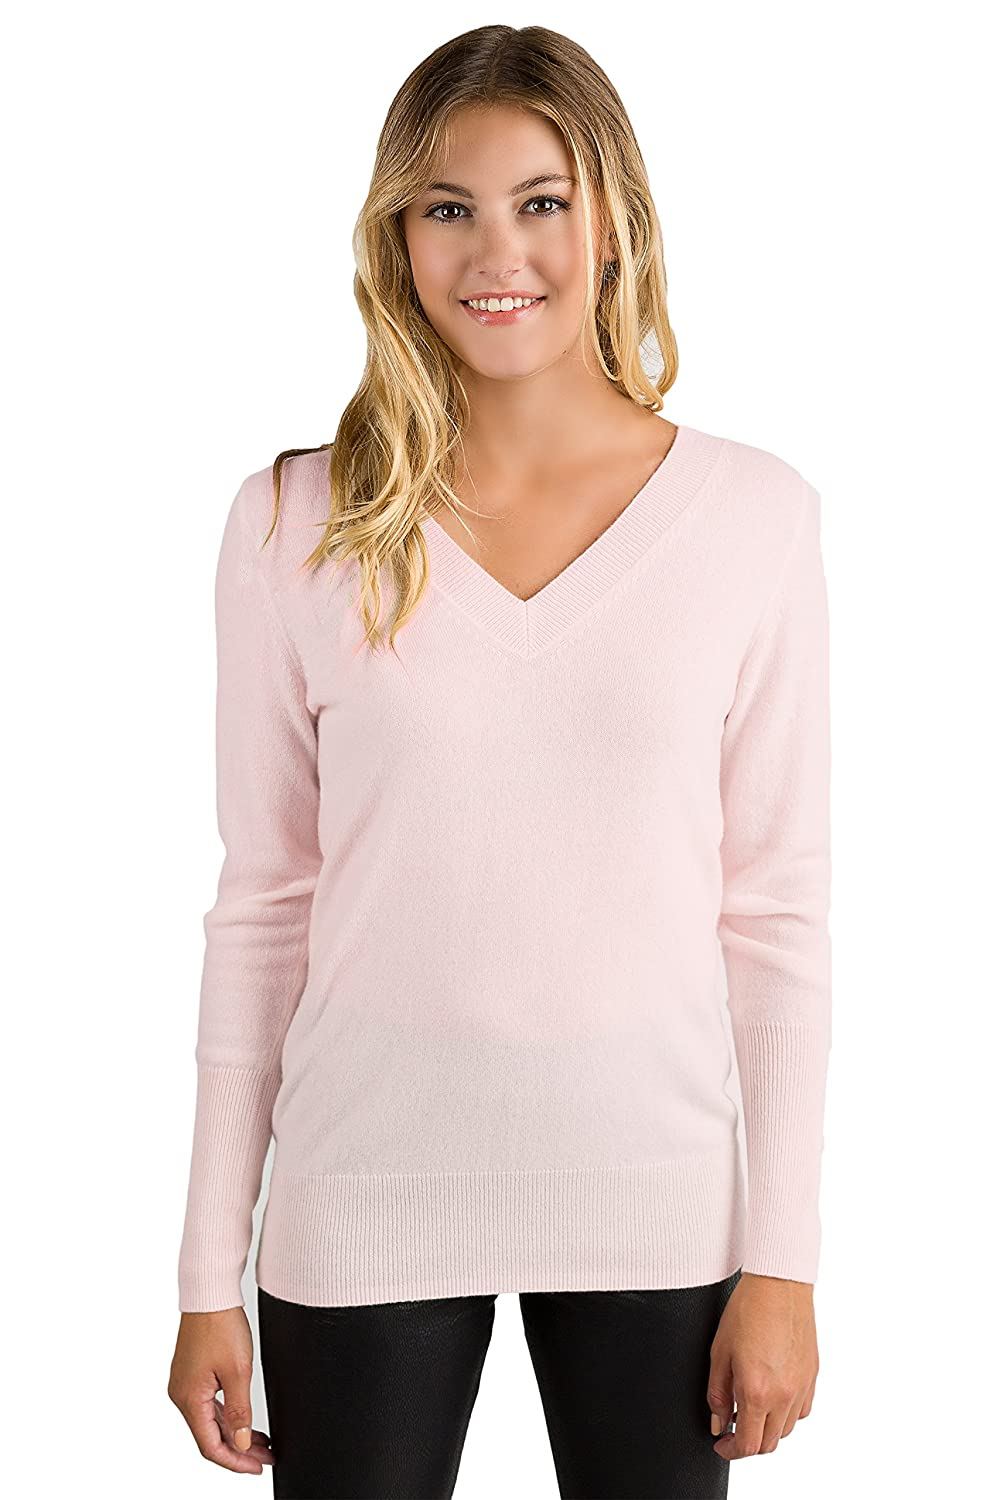 JENNIE LIU Women's 100% Pure Cashmere Long Sleeve Ava V Neck Pullover Sweater 1571